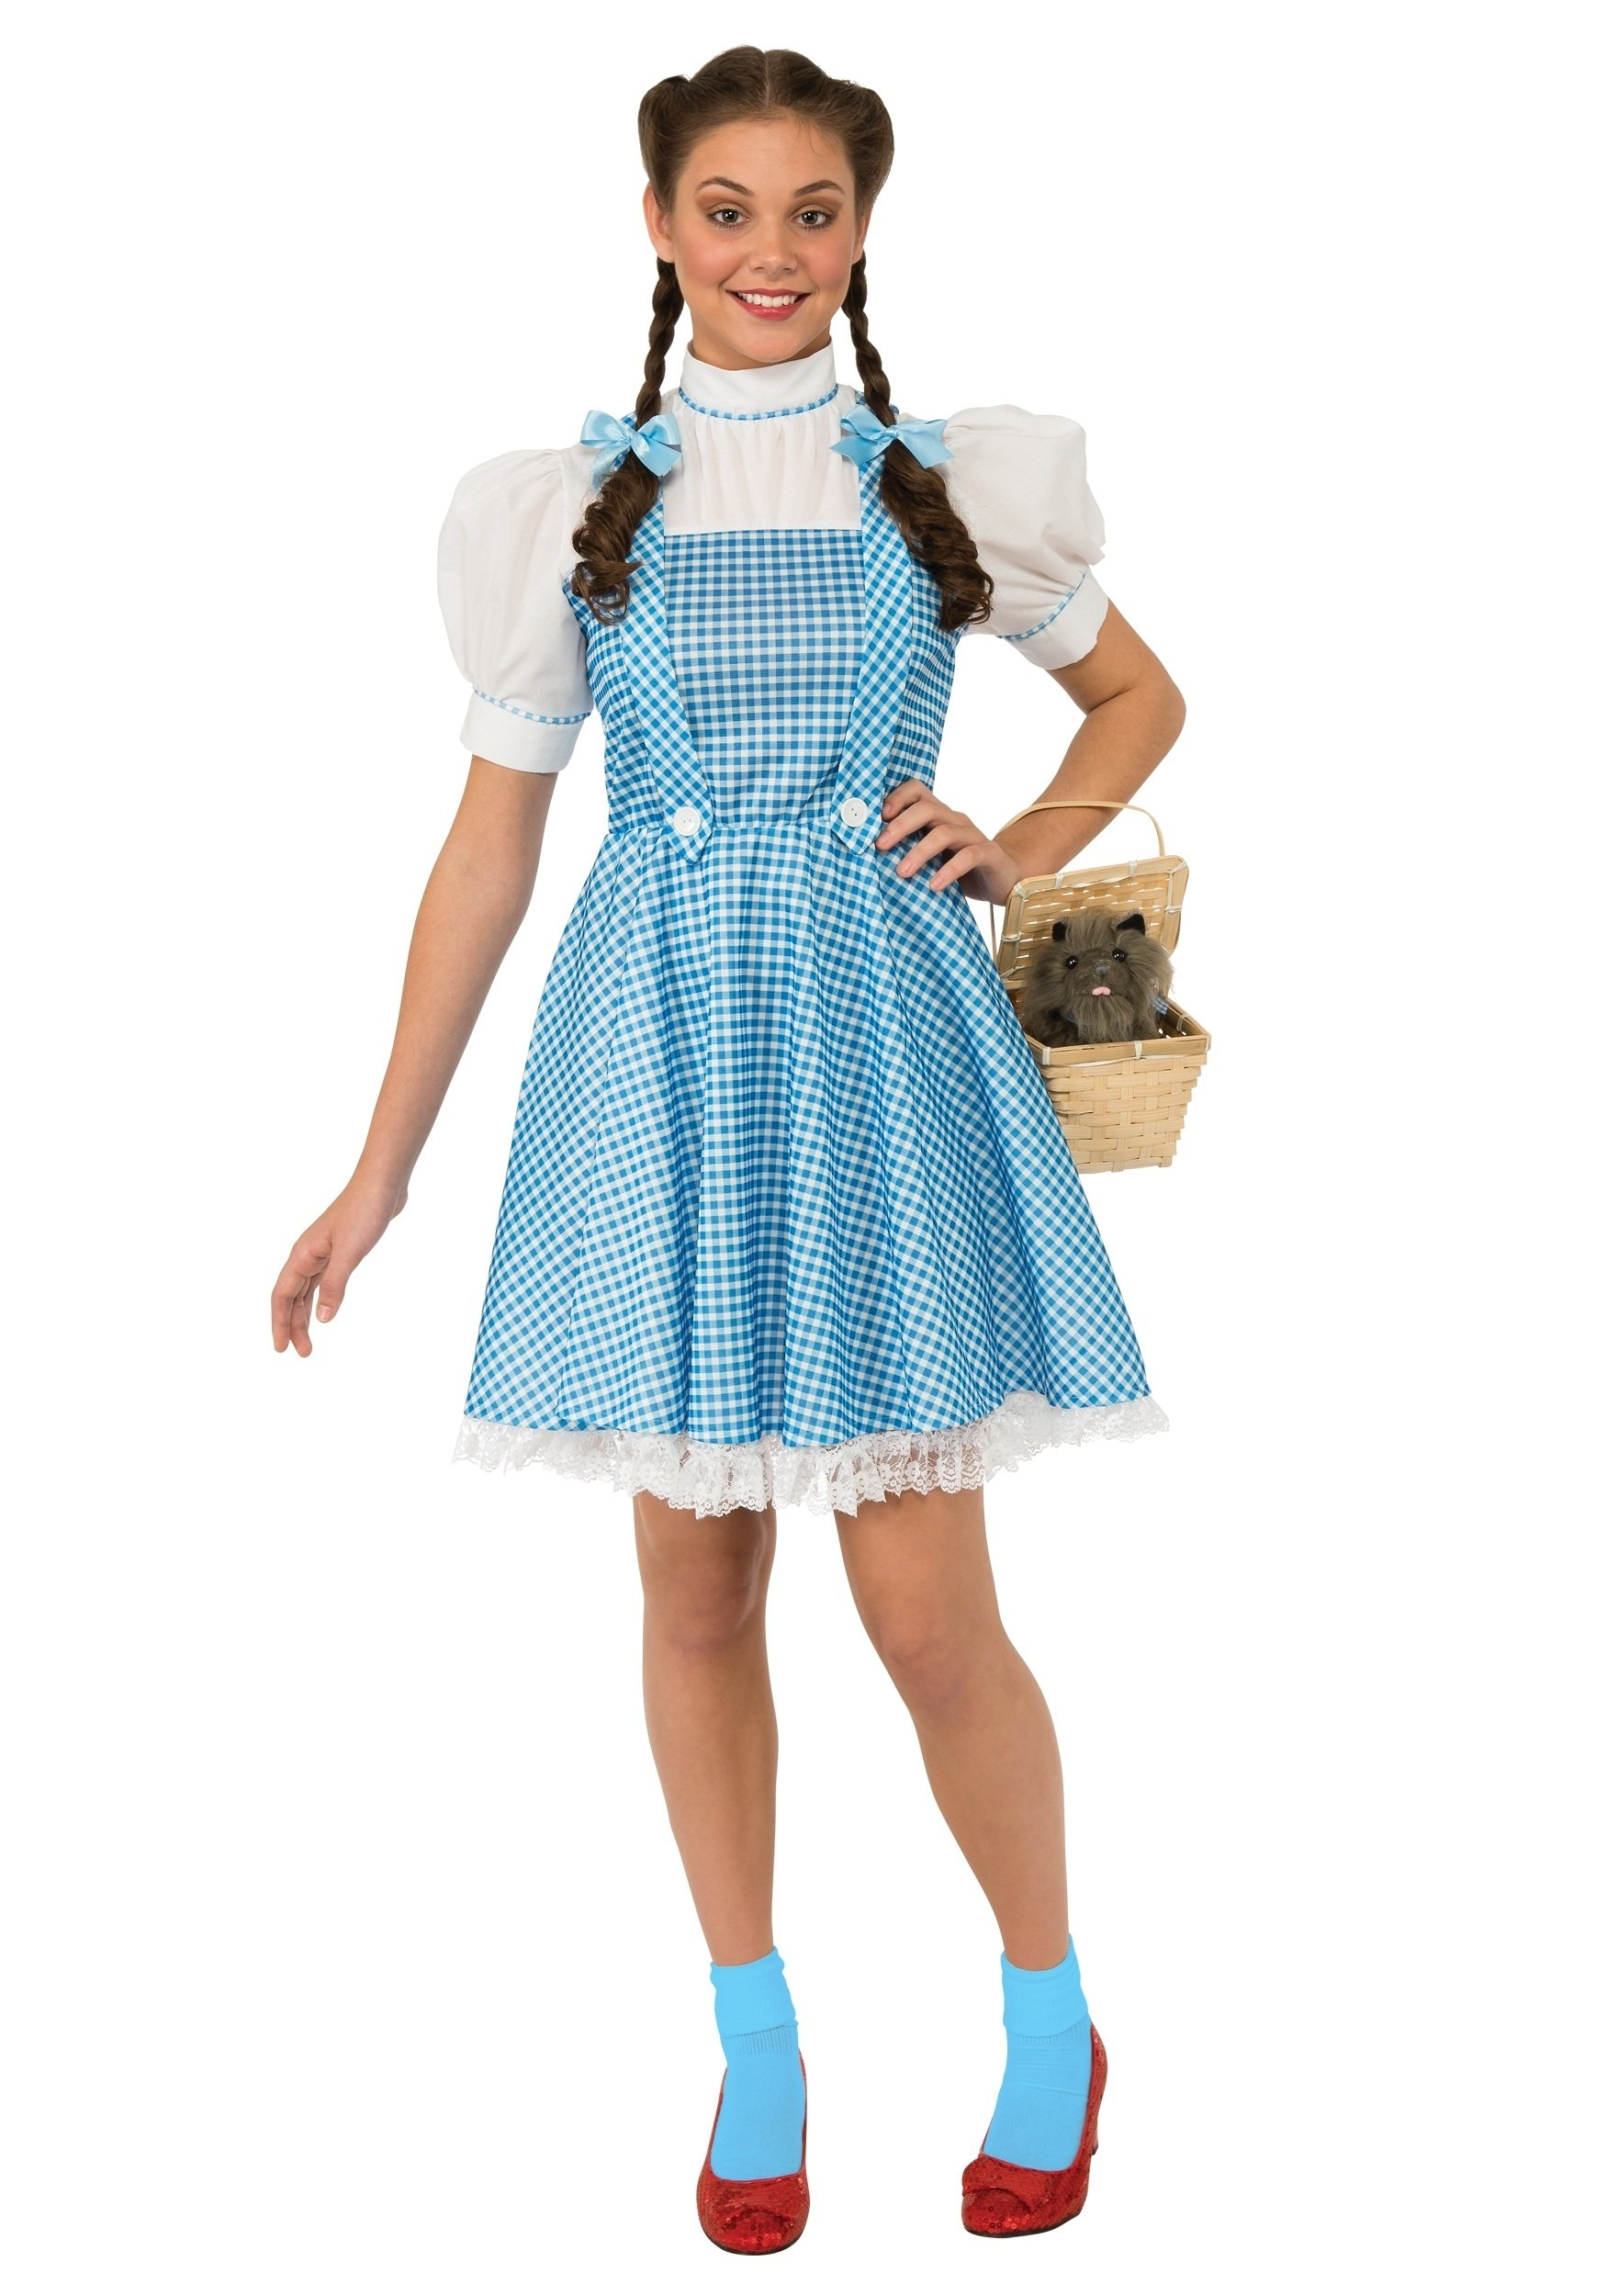 10 Stylish Ideas For Halloween Costumes For Women womens adult dorothy costume 1 2021